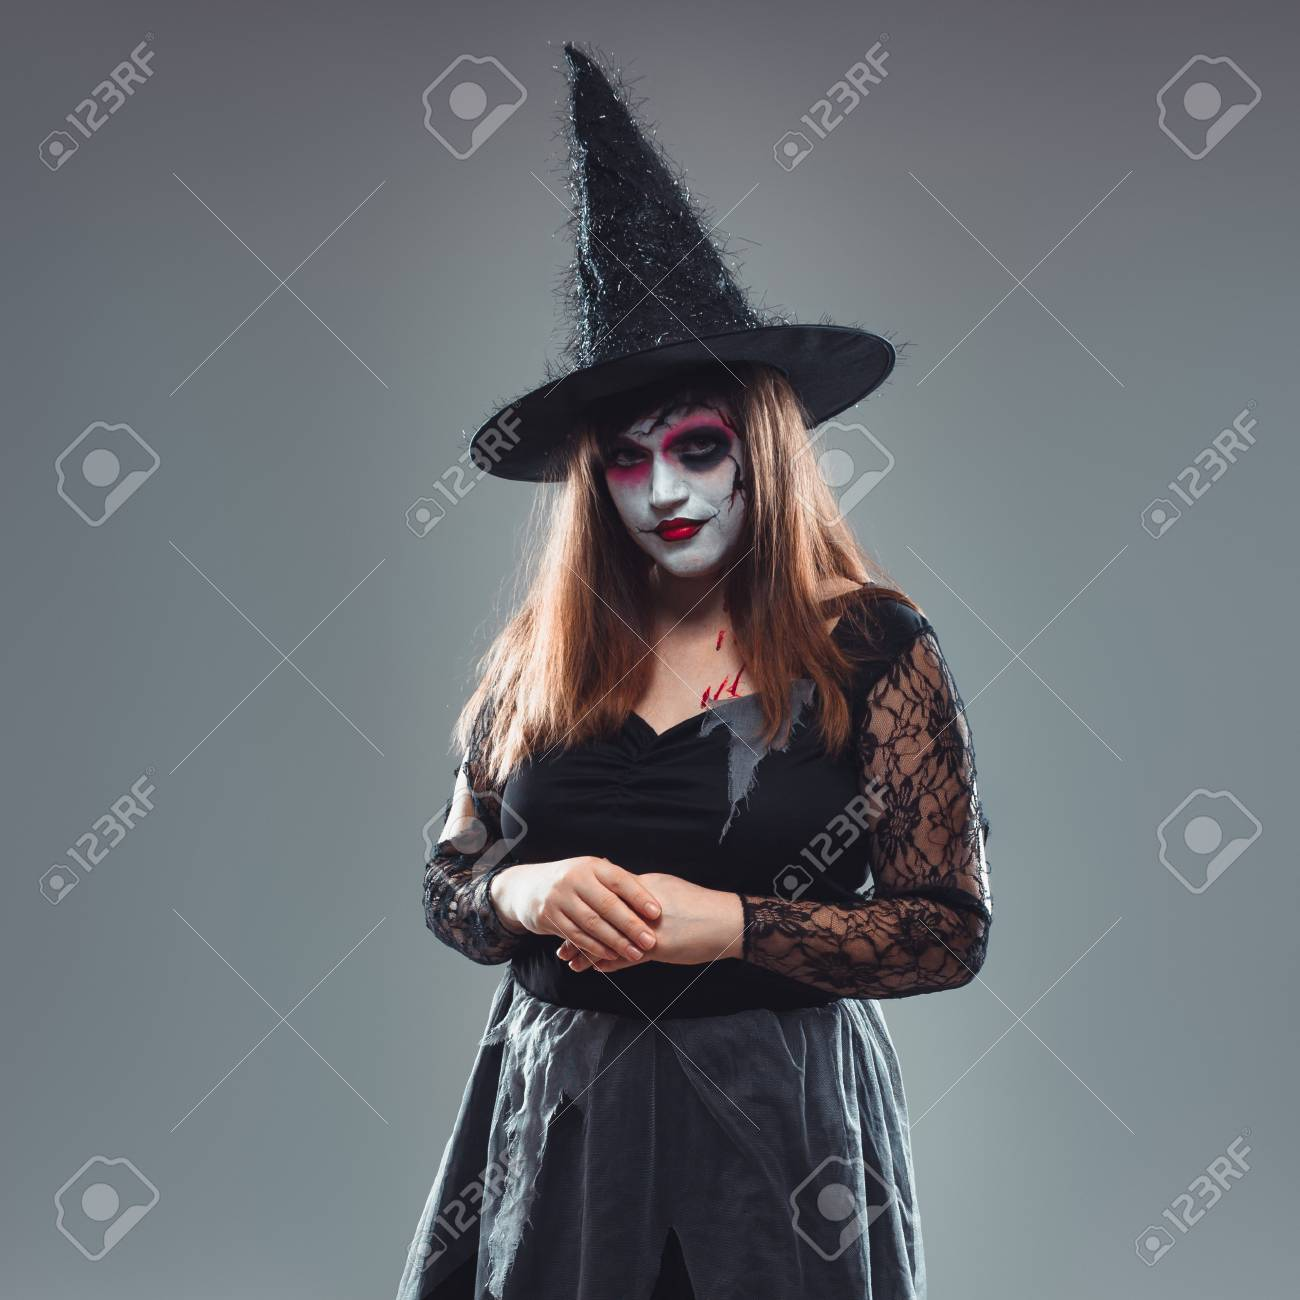 Dead Bride Halloween Costume.Gothic Young Woman In Witch Halloween Costume With Hat Standing